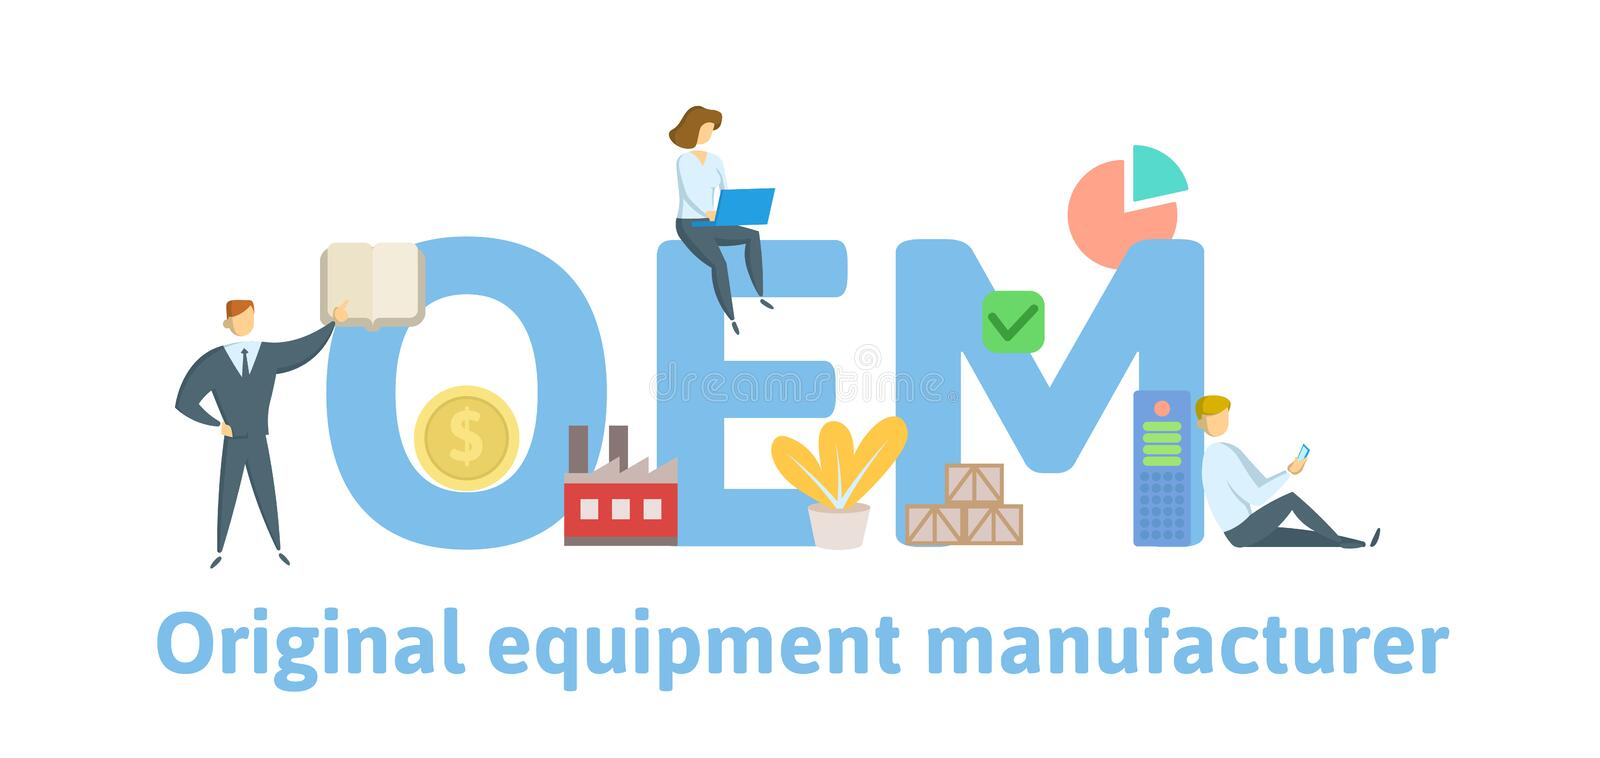 OEM, Original Equipment Manufacturing. Concept with keywords, people and icons. Flat vector illustration. Isolated on. OEM, Original Equipment Manufacturing stock illustration